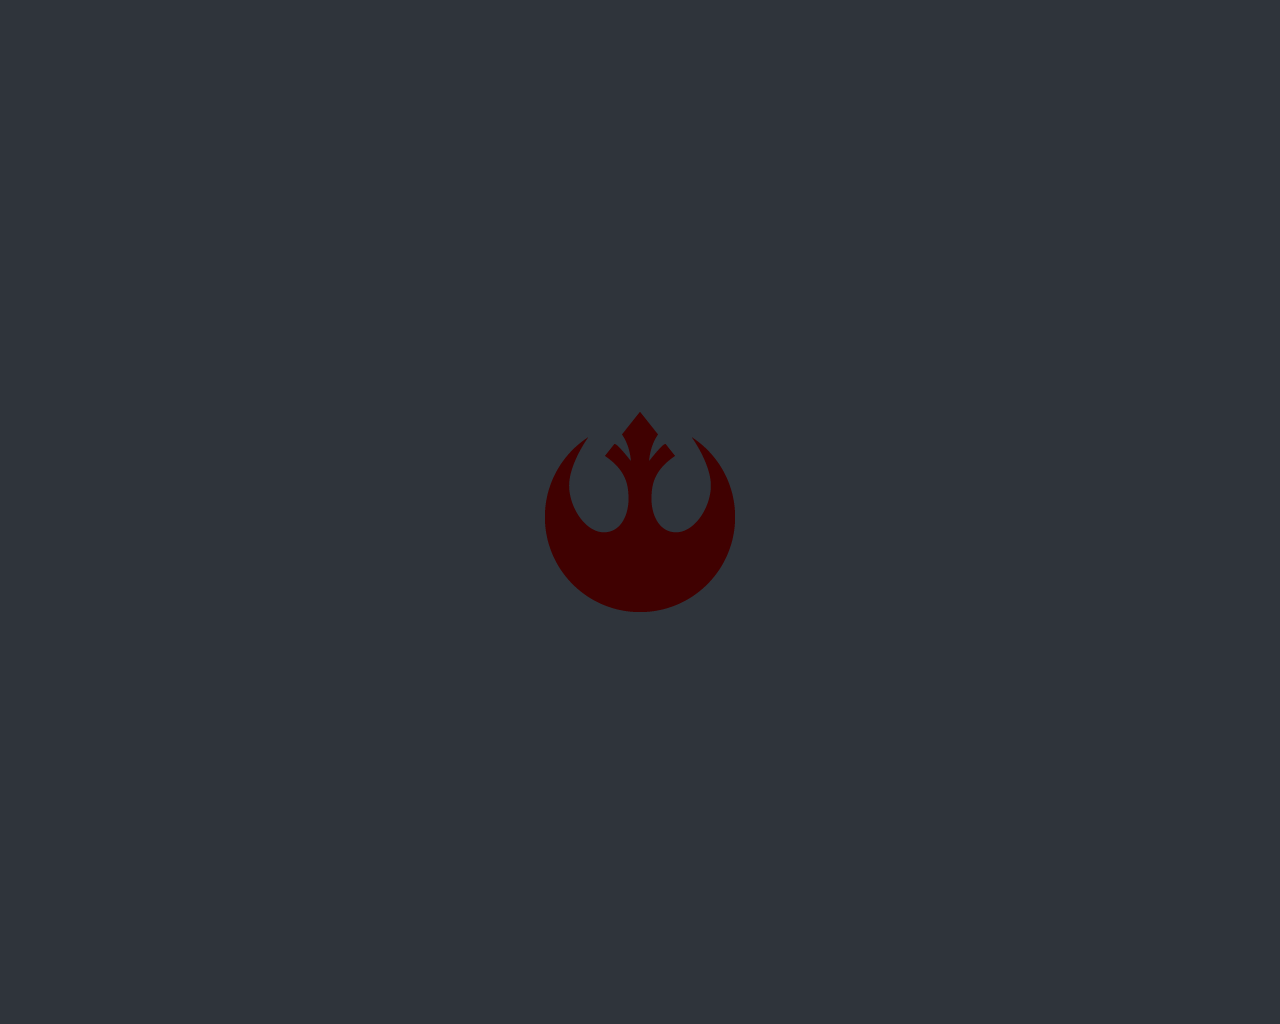 Rebel alliance star wars star wars rebel alliance